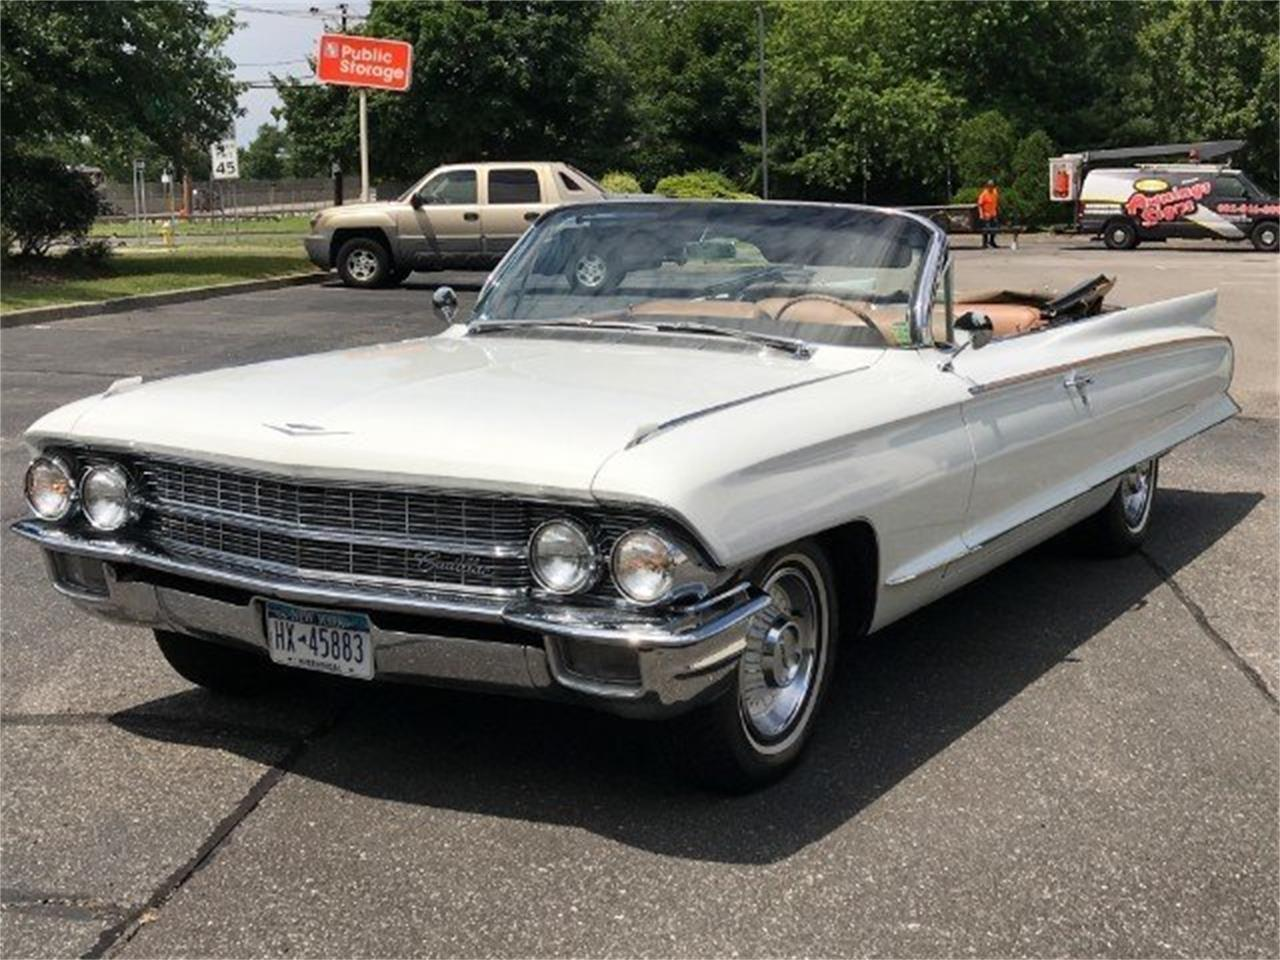 Large Picture of 1962 Cadillac Eldorado located in West Babylon New York - $29,500.00 Offered by Hollywood Motors - LDHM